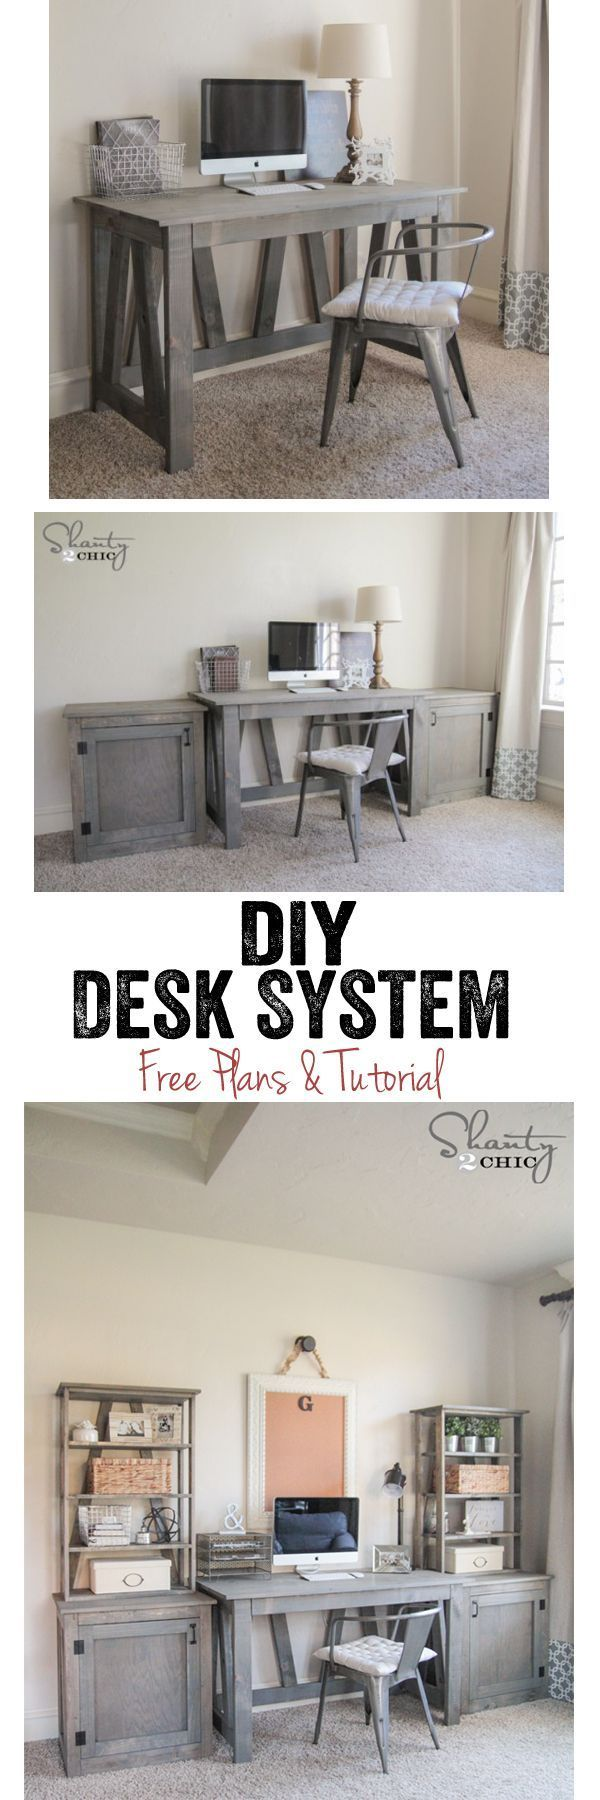 best Great DIY Projects images on Pinterest Creative ideas Good